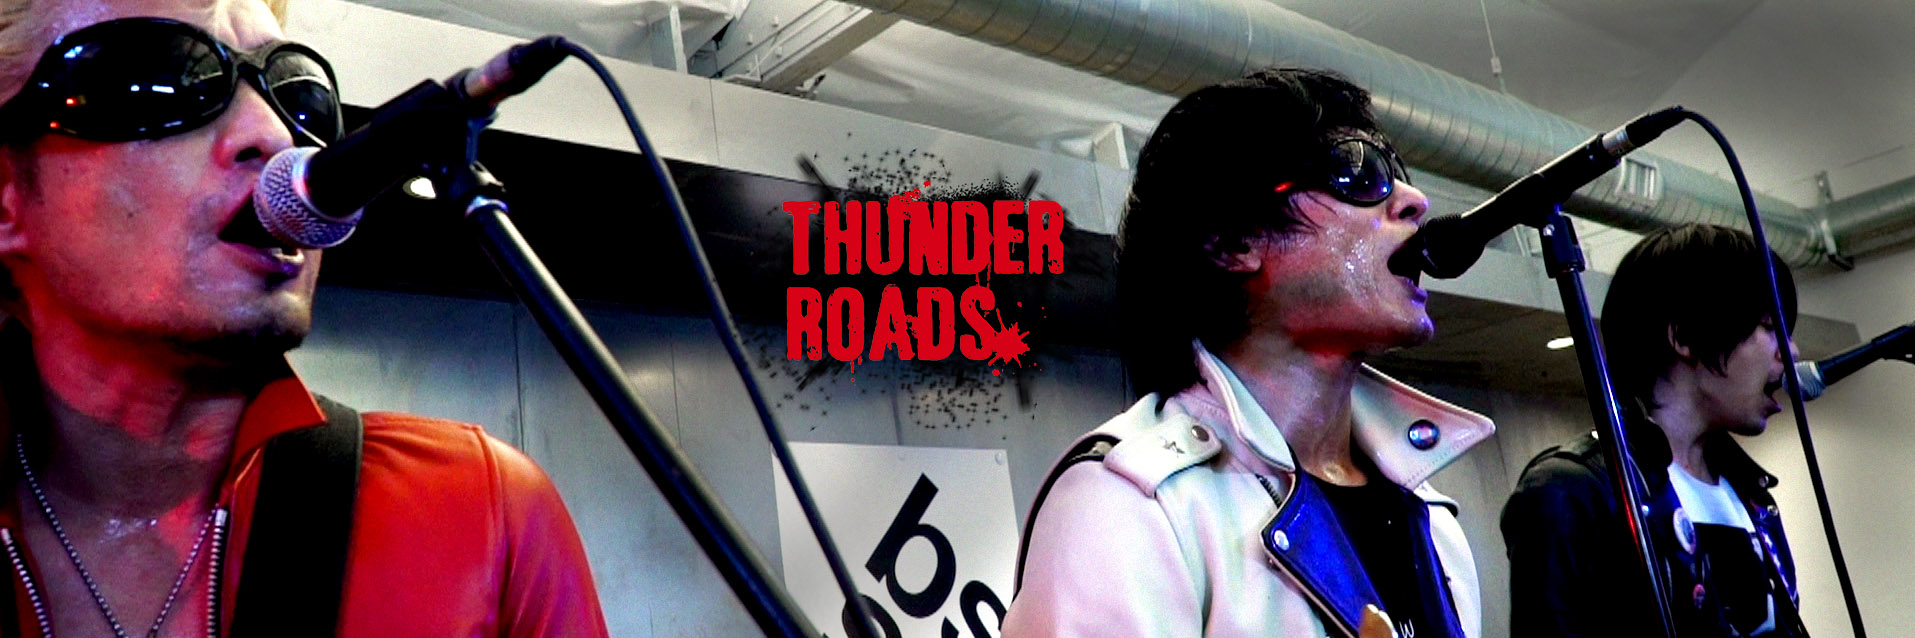 The Thunderroads